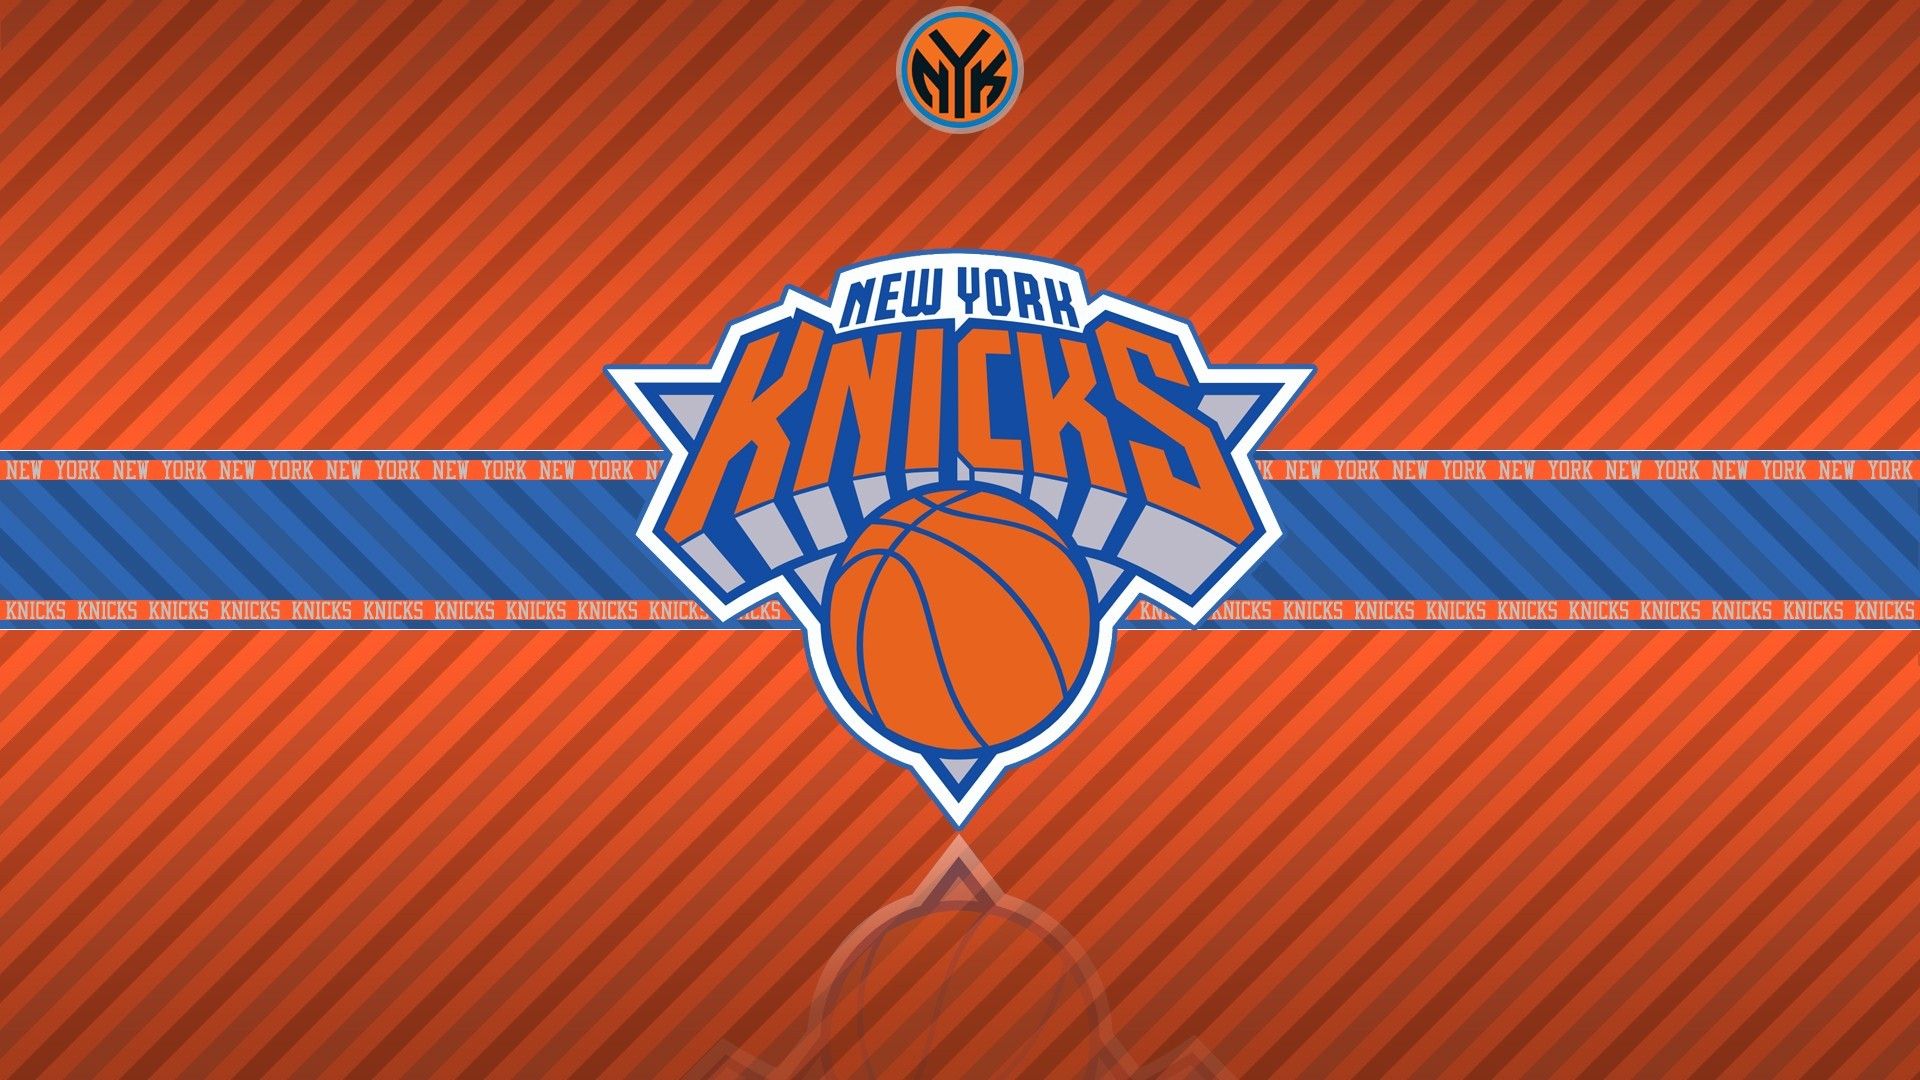 1920x1080 New York Knicks HD Wallpapers | Backgrounds - Wallpaper Abyss